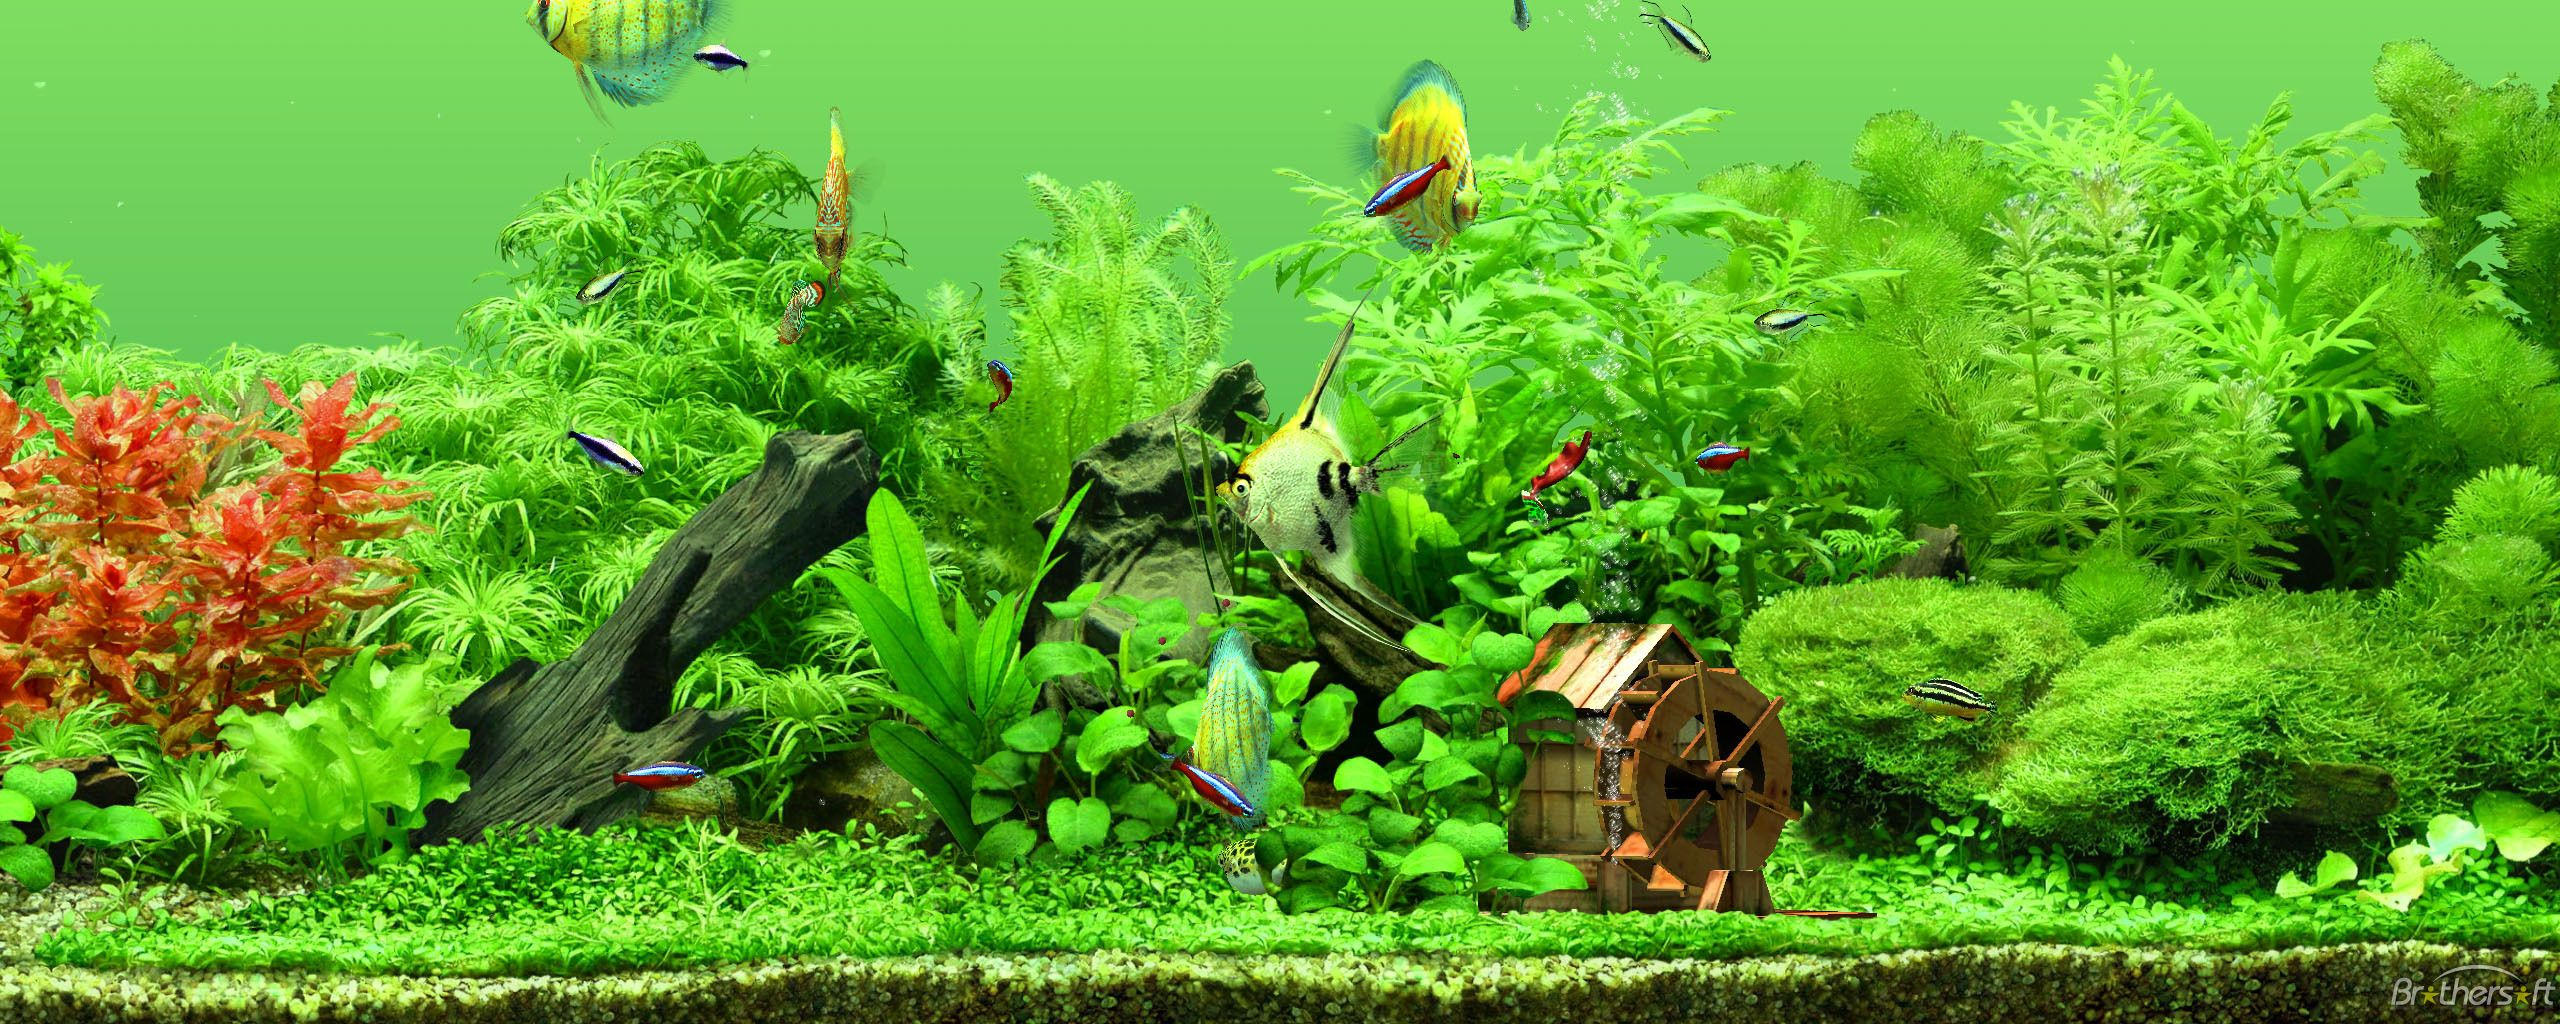 freshwater aquarium design examples 6 - Freshwater Aquarium Design Ideas